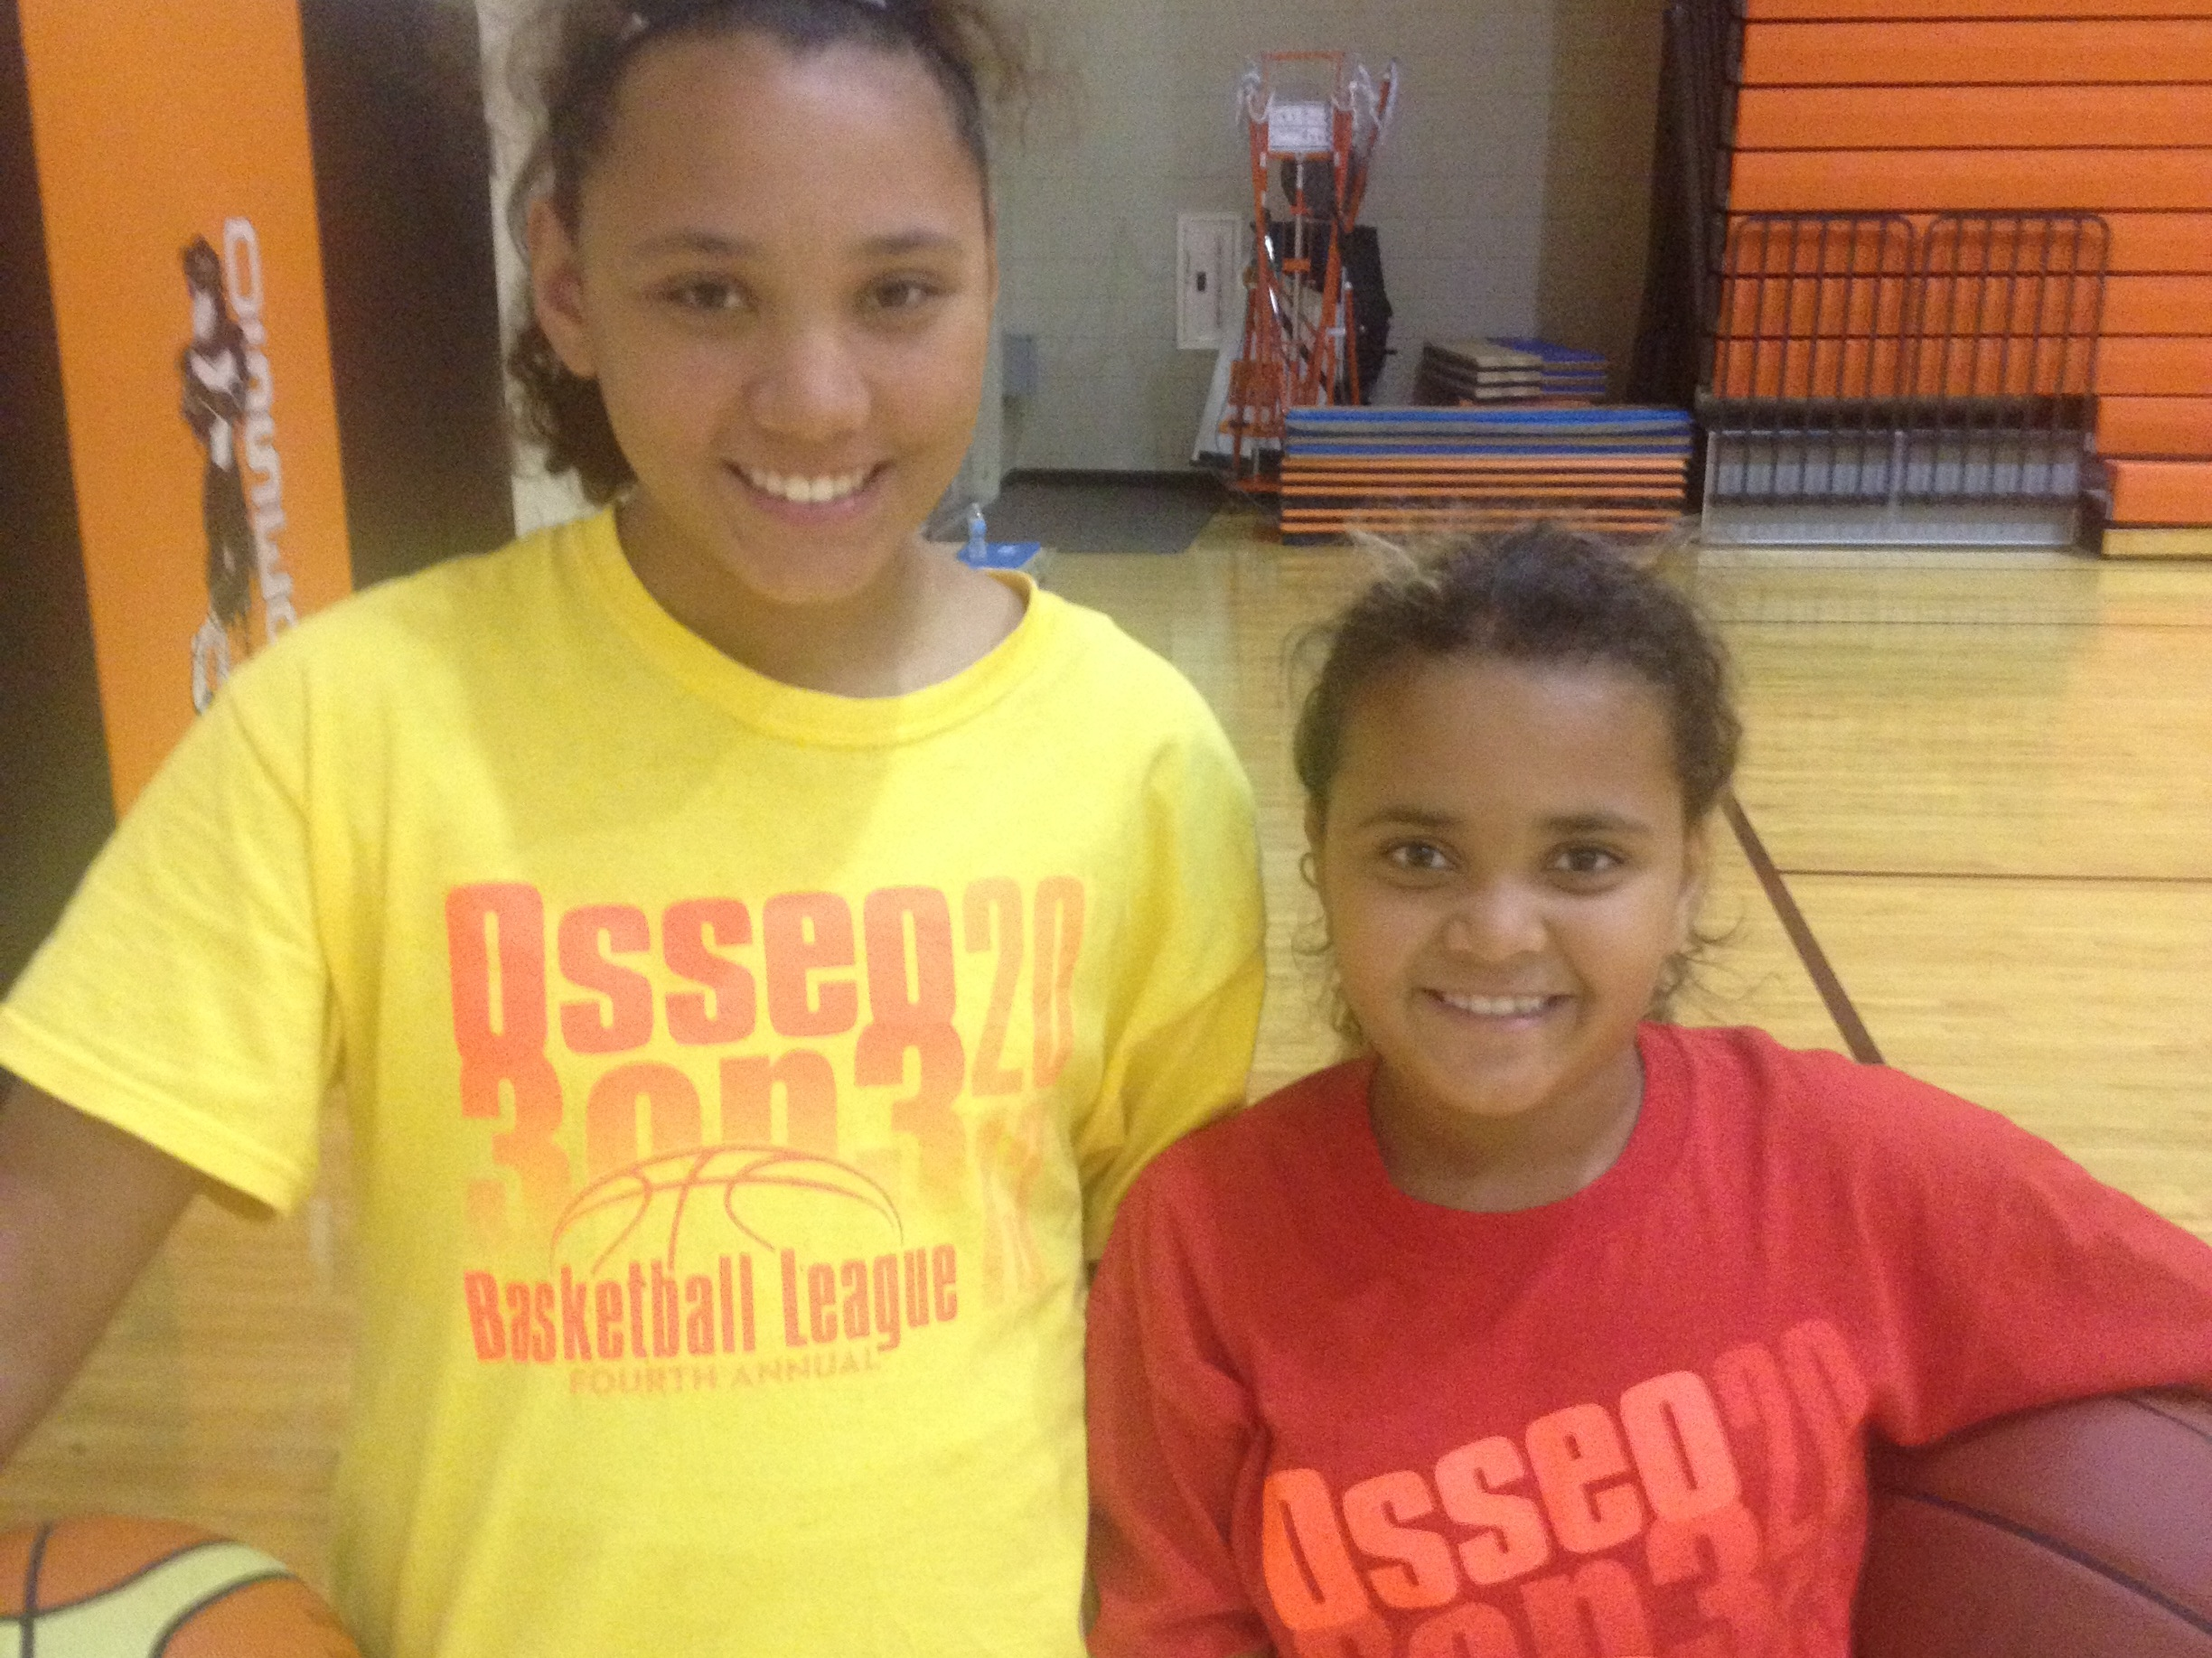 banner 5 and Osseo page.JPG